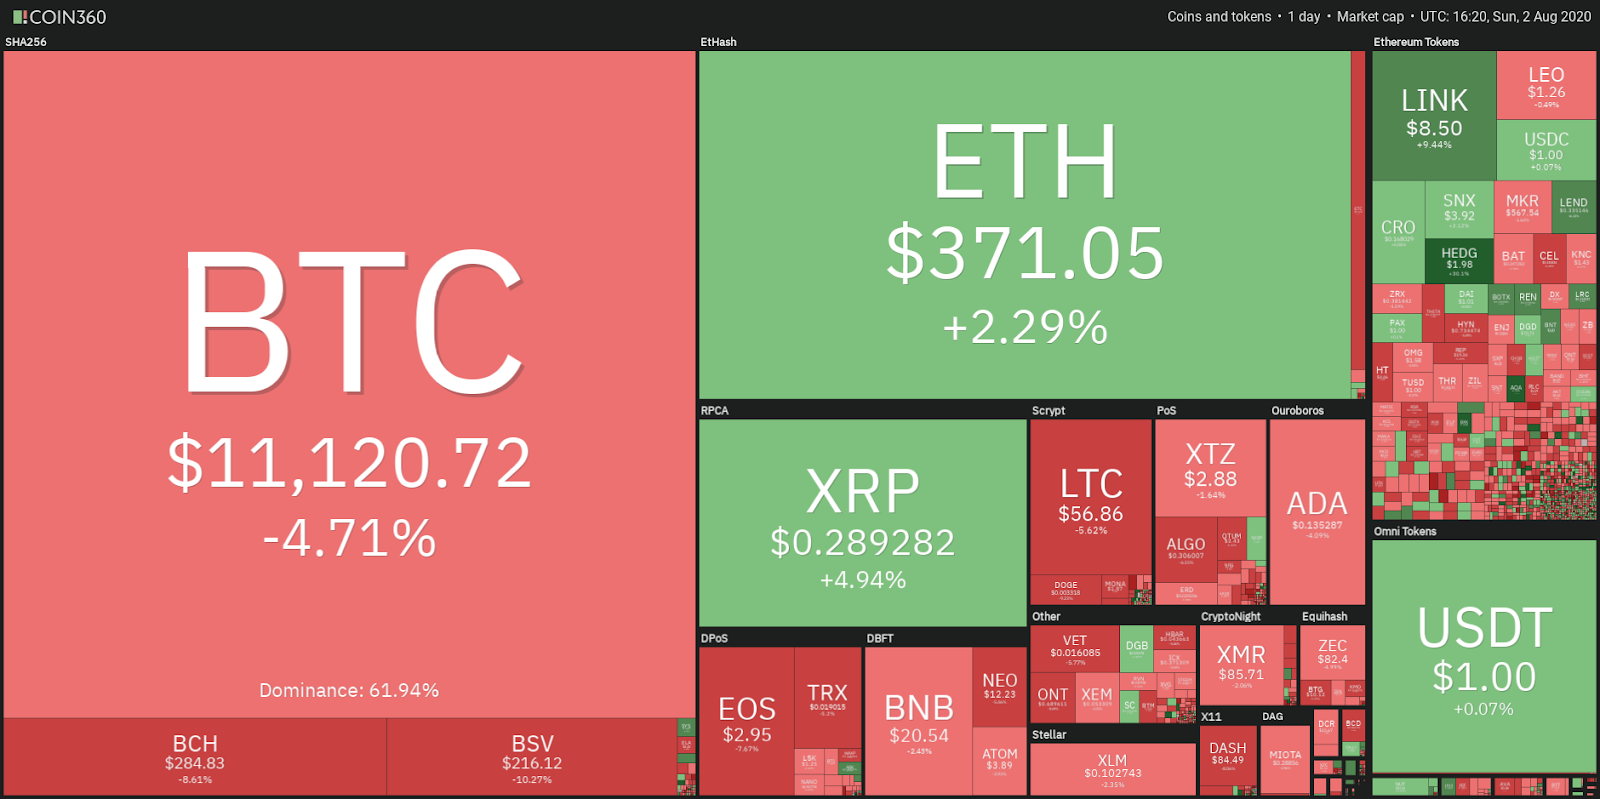 Crypto market data daily view